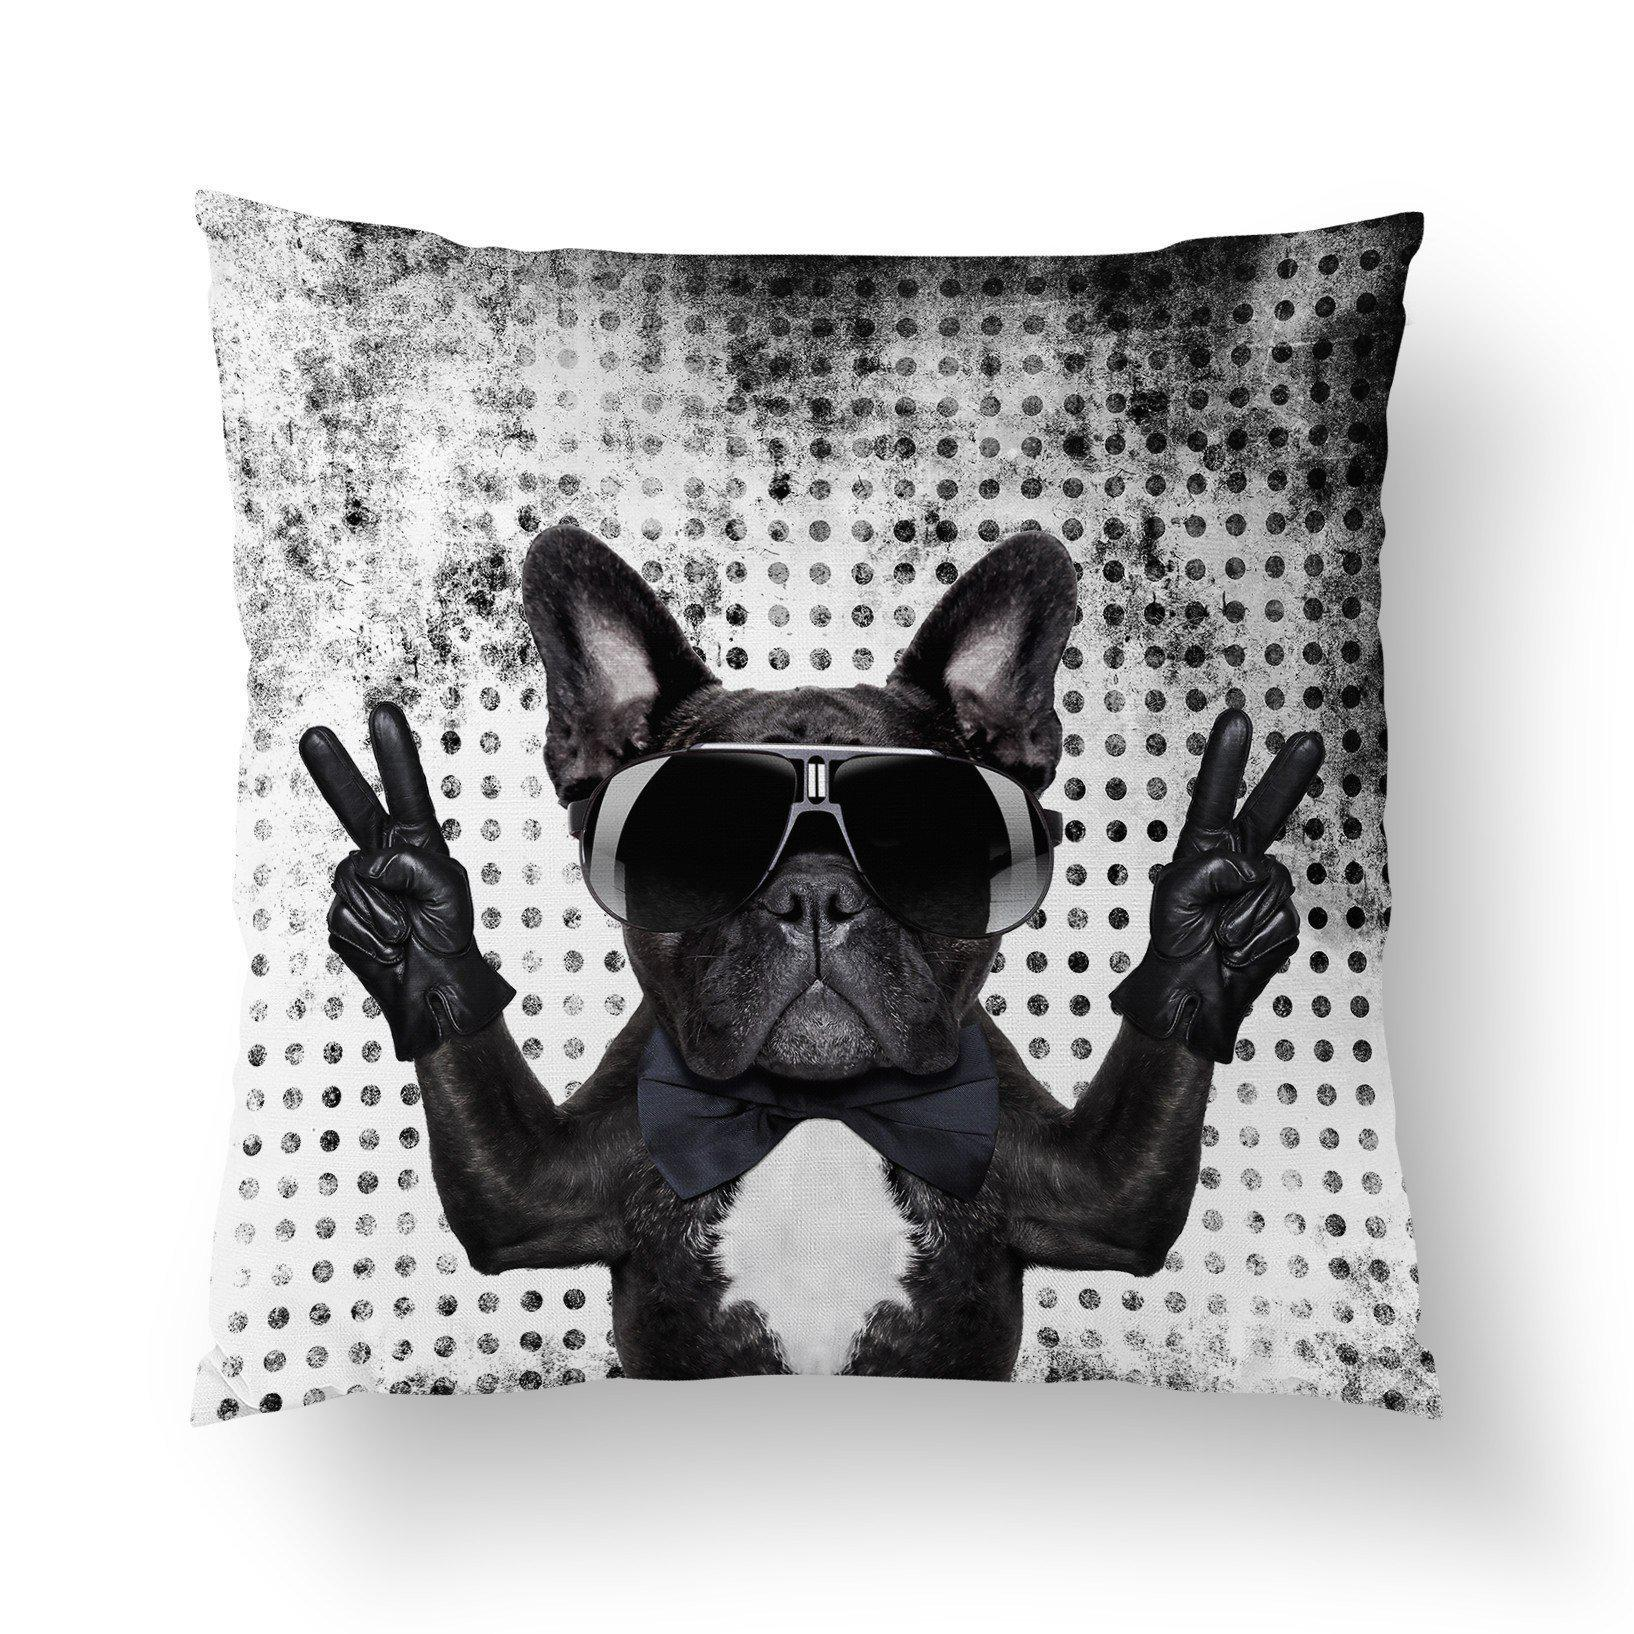 French Bulldog Pillow Cover - Pillow Covers - W.FRANCIS